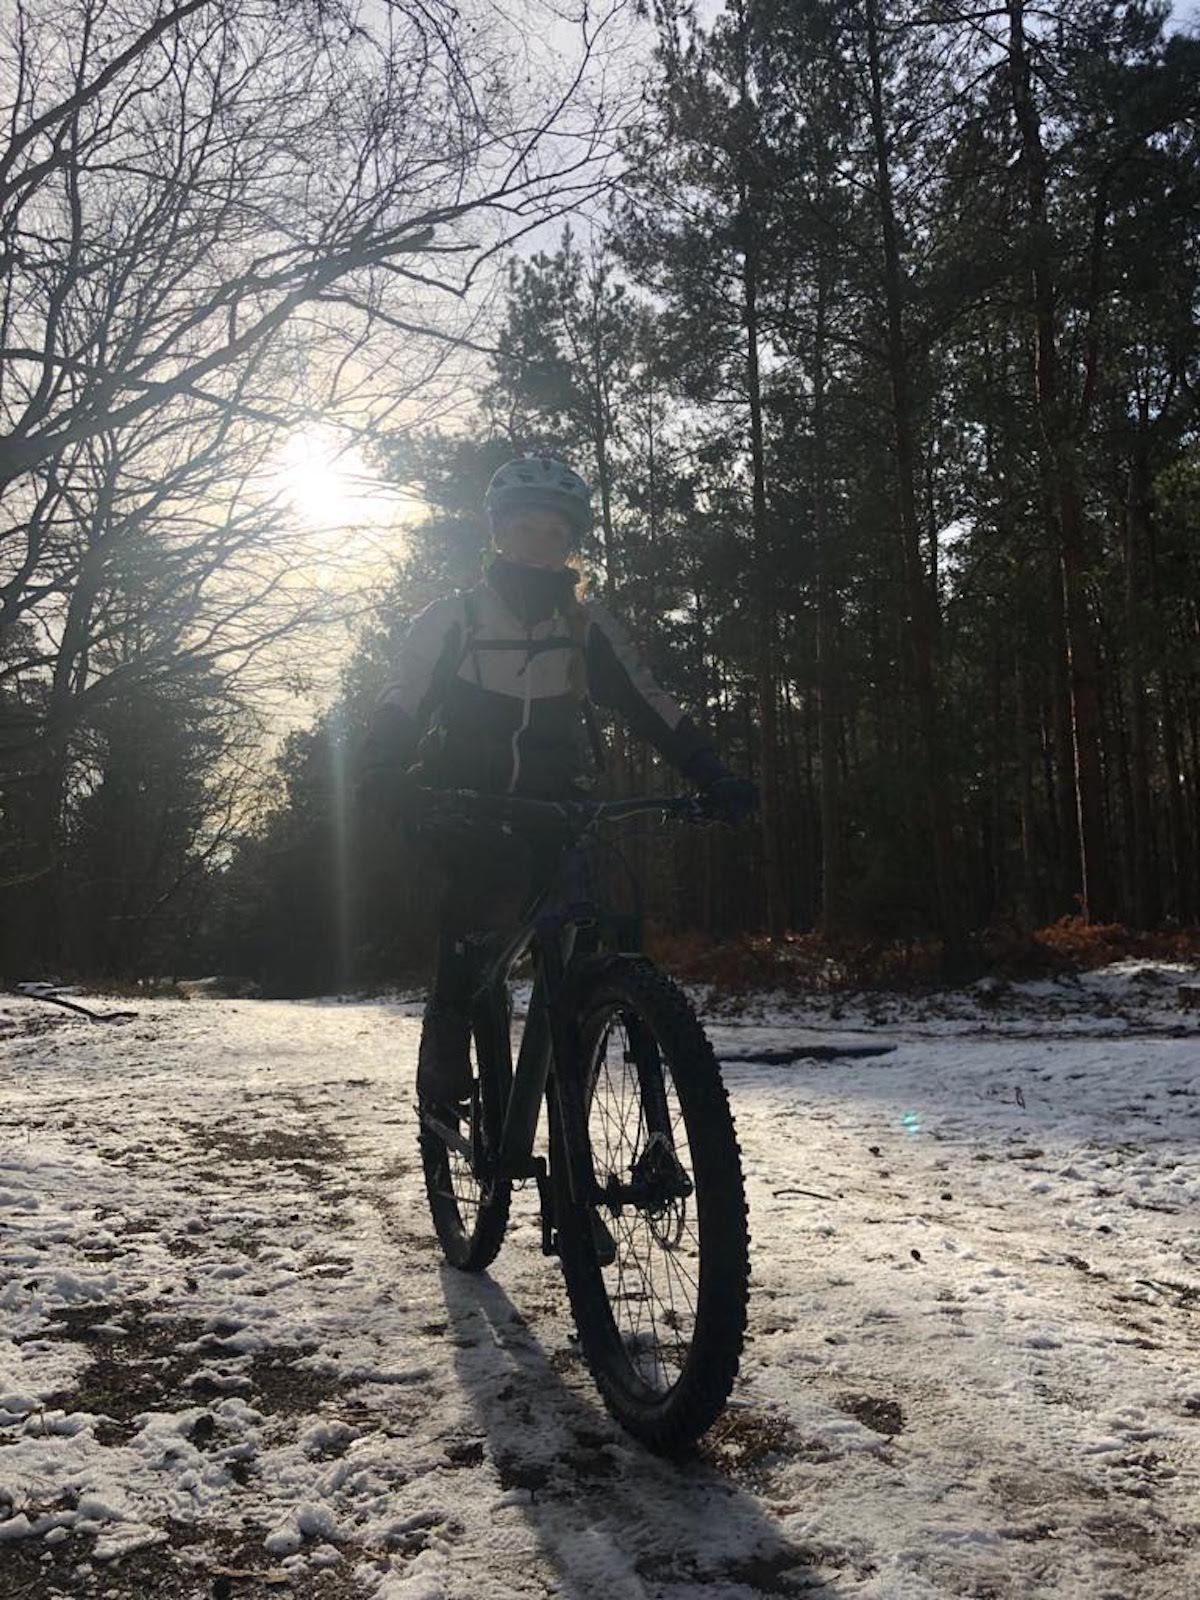 Danielle Lovett - Mountain biking in the snow